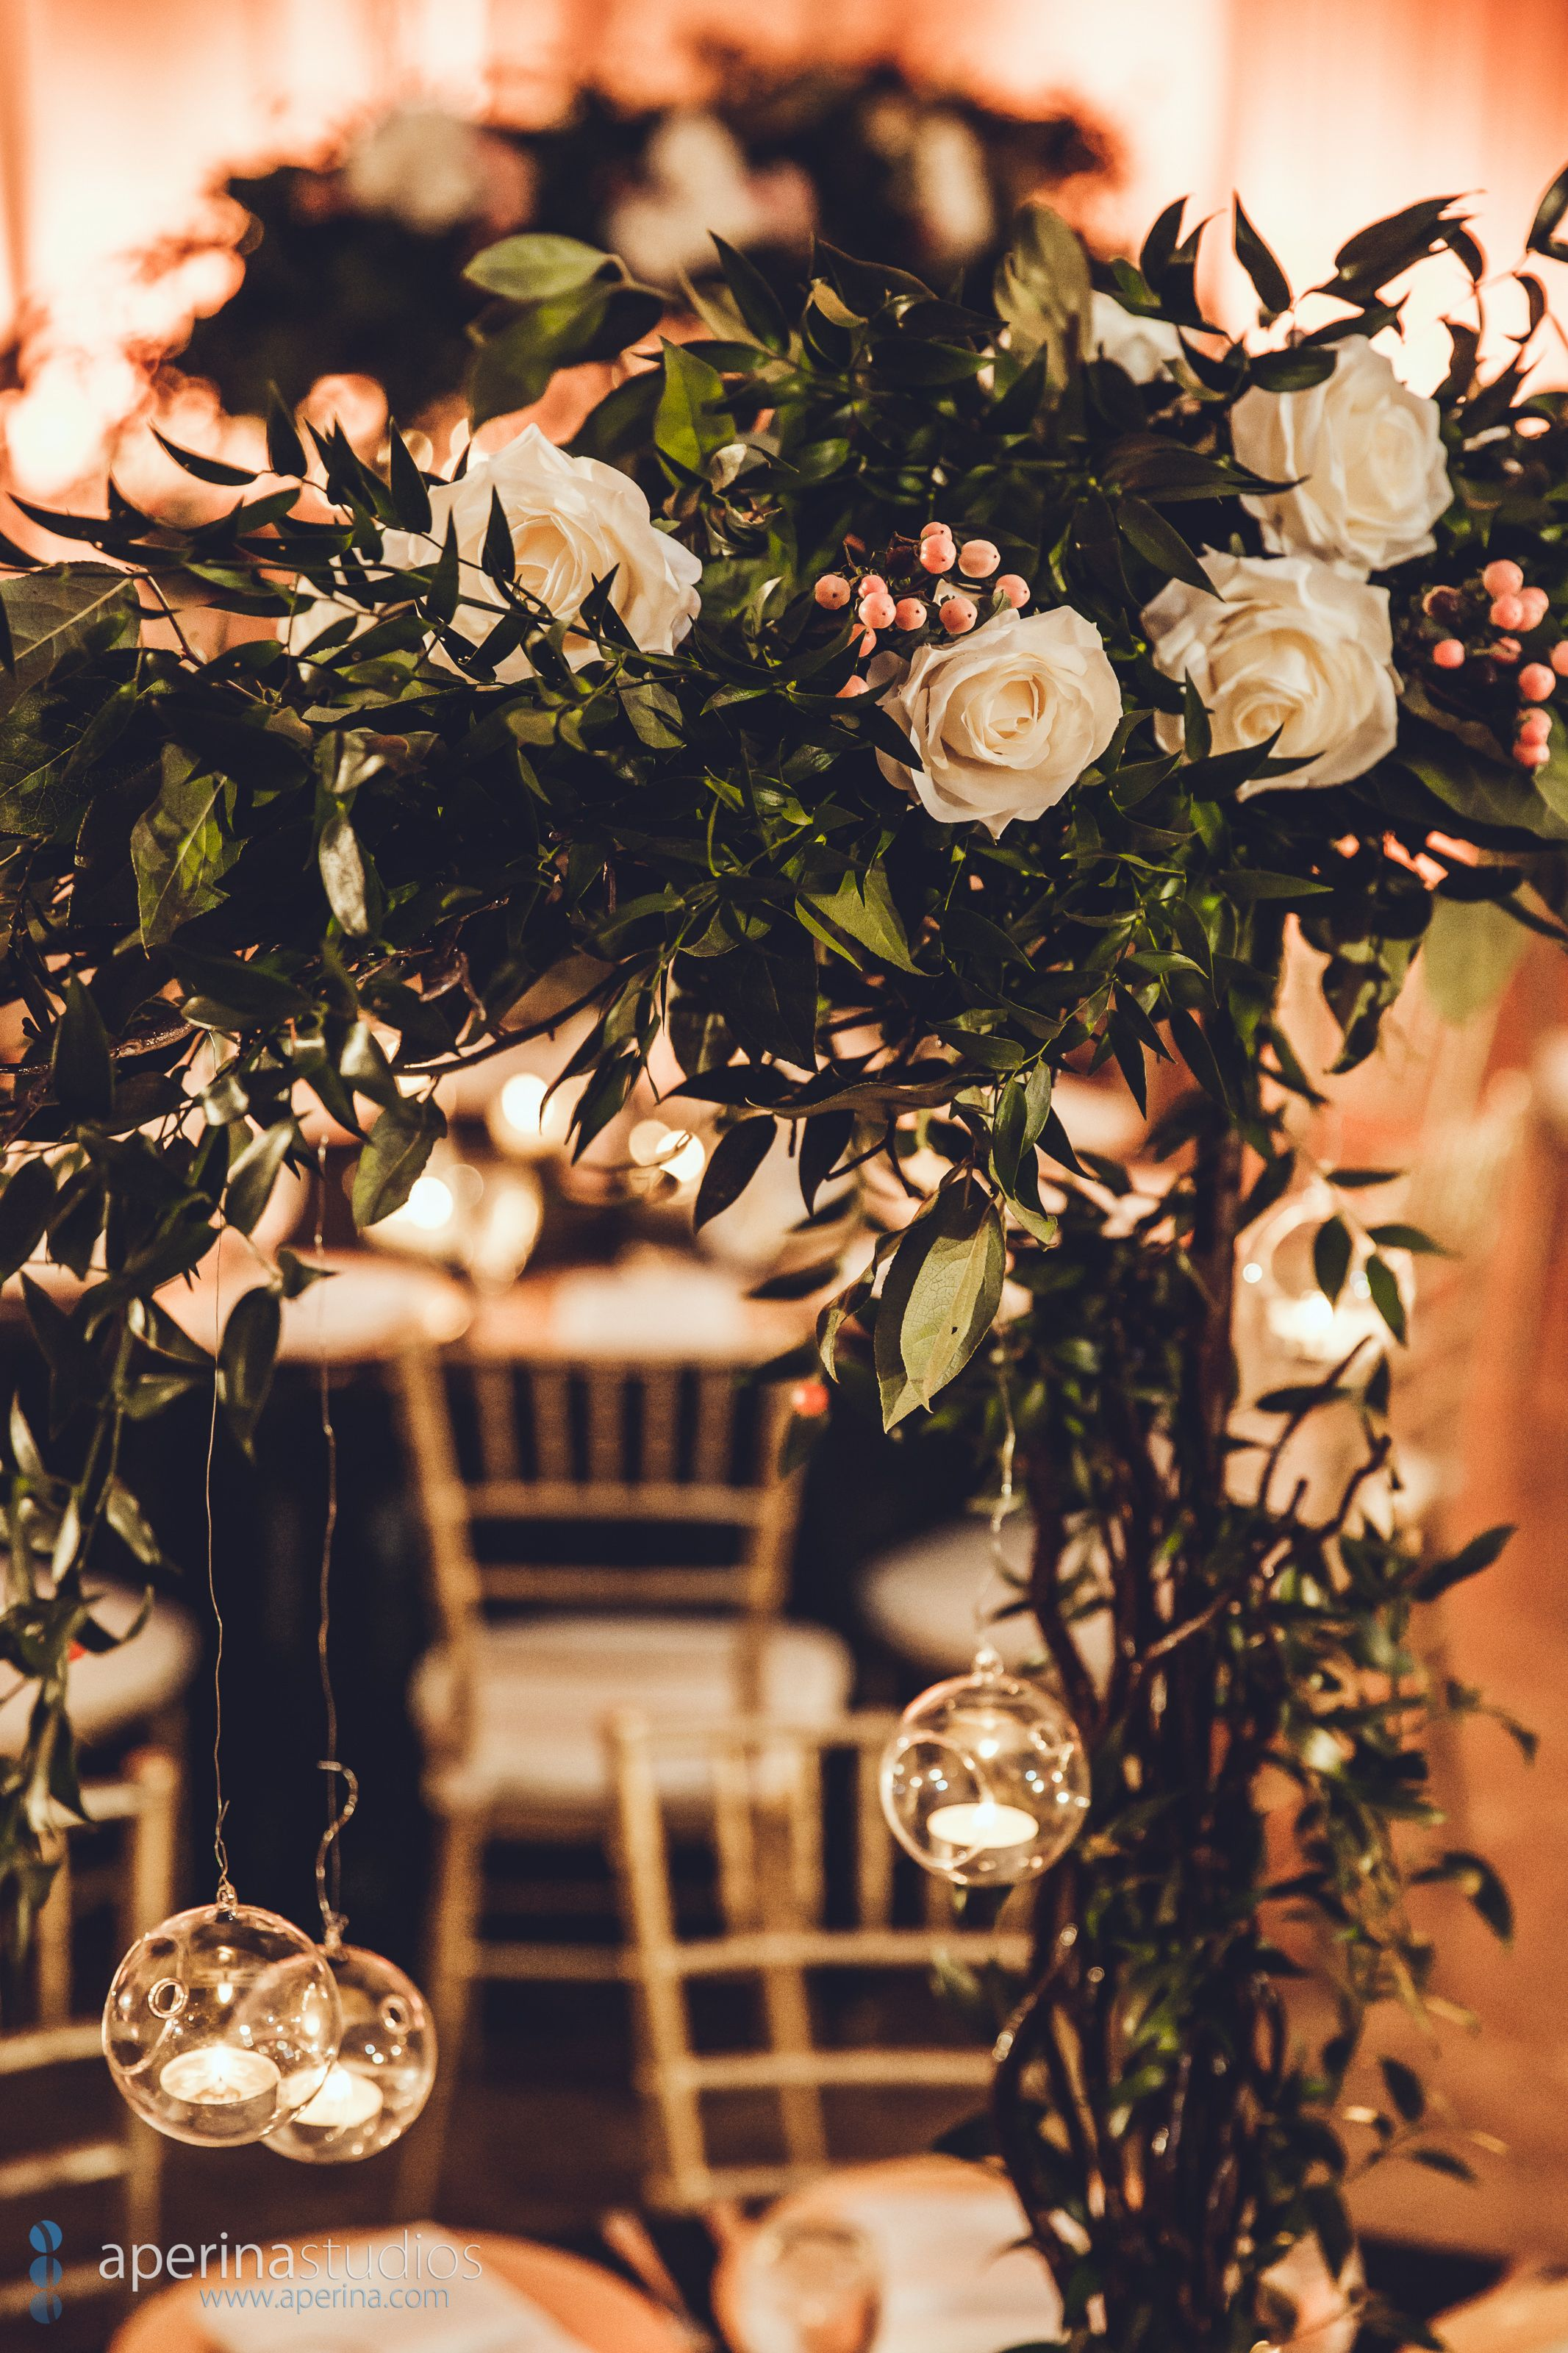 Gorgeous greenery and white roses with hanging tea lights at the